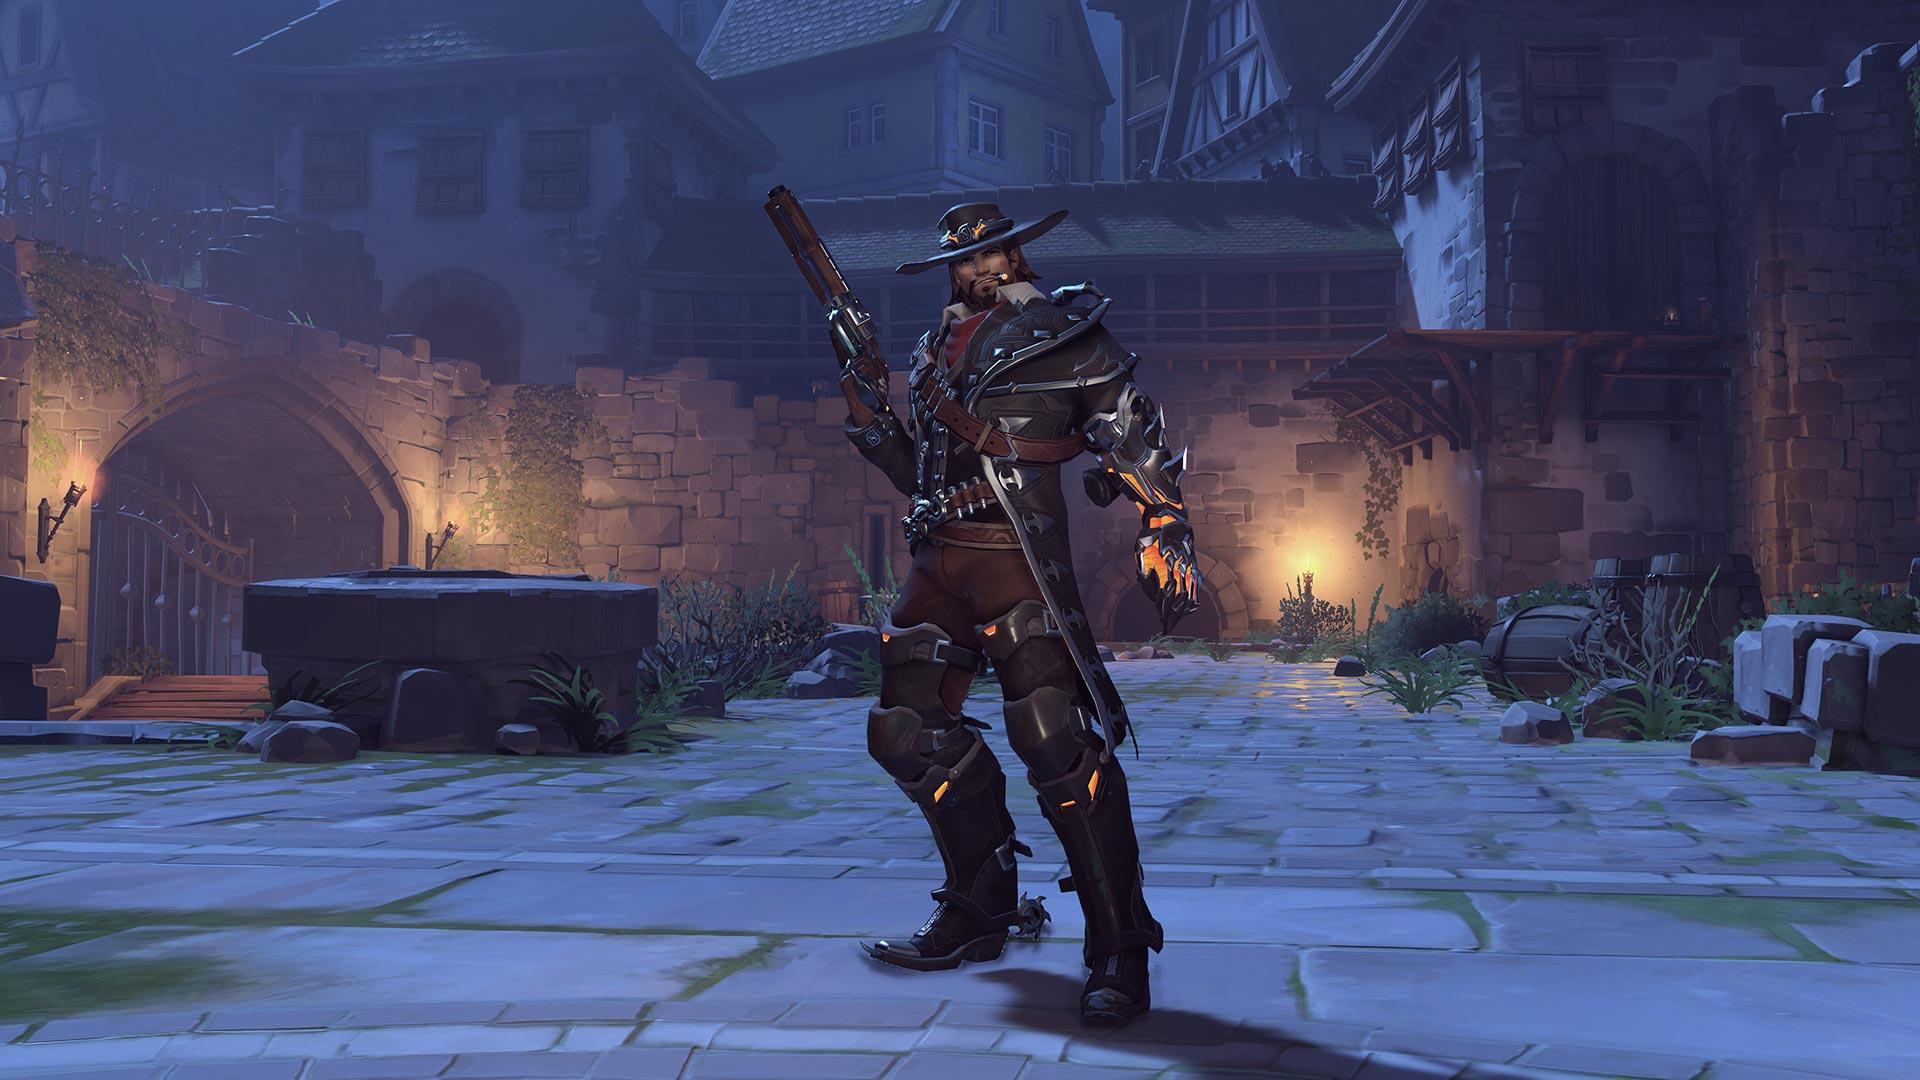 overwatch halloween terror 2017 new skins 4 - Скины на хэллоуин Overwatch 2017cd